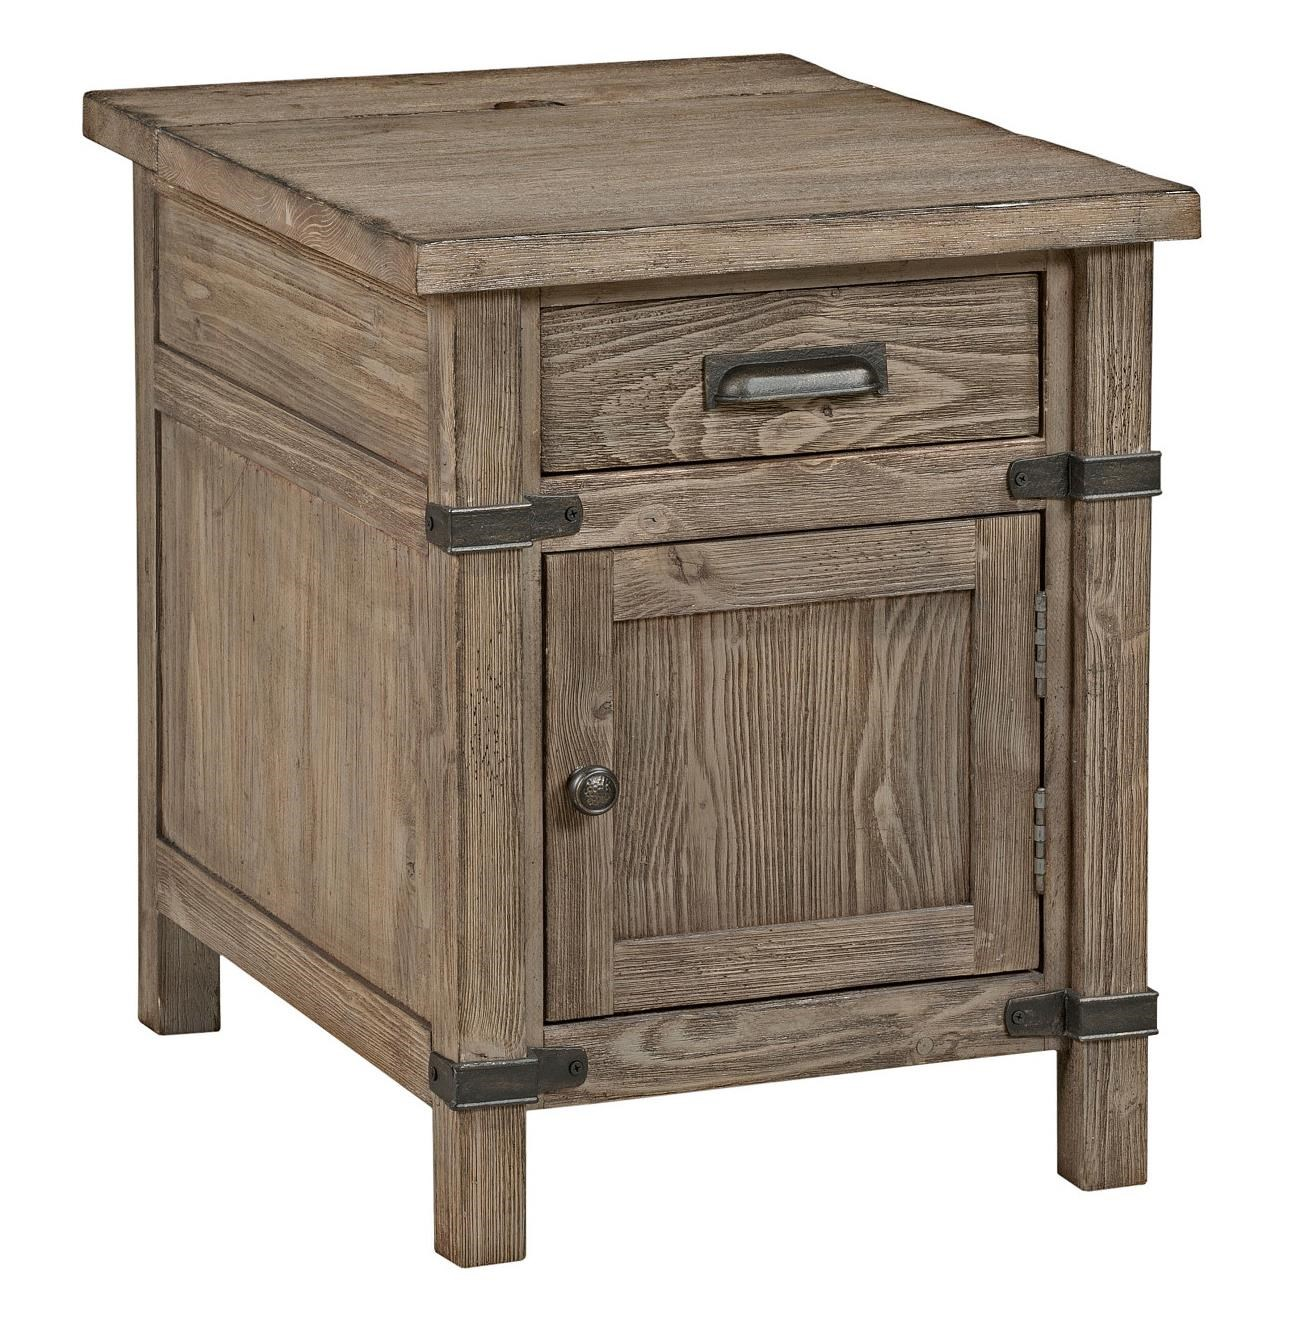 Superb Kincaid Furniture Foundry Rustic Weathered Gray Chairside Table With Power  Outlet   Becker Furniture World   End Tables